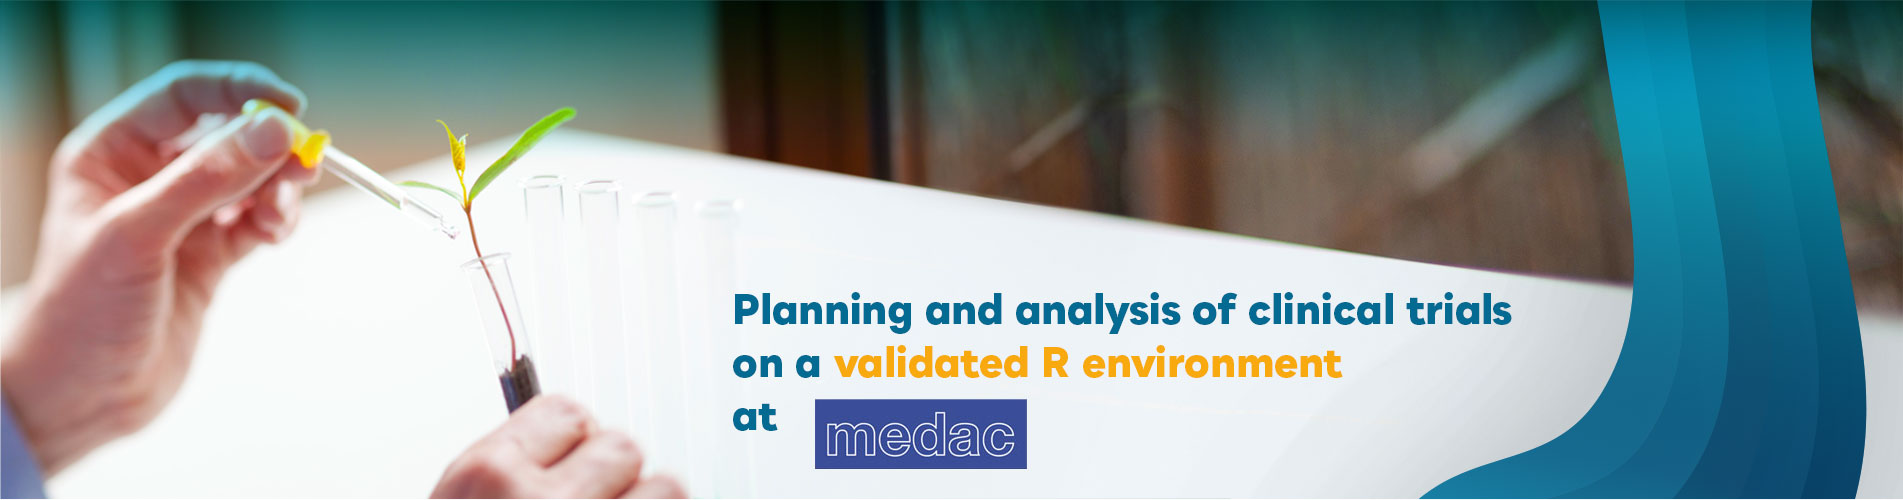 Planning and Analysis of Clinical Trials on a Validated R Environment